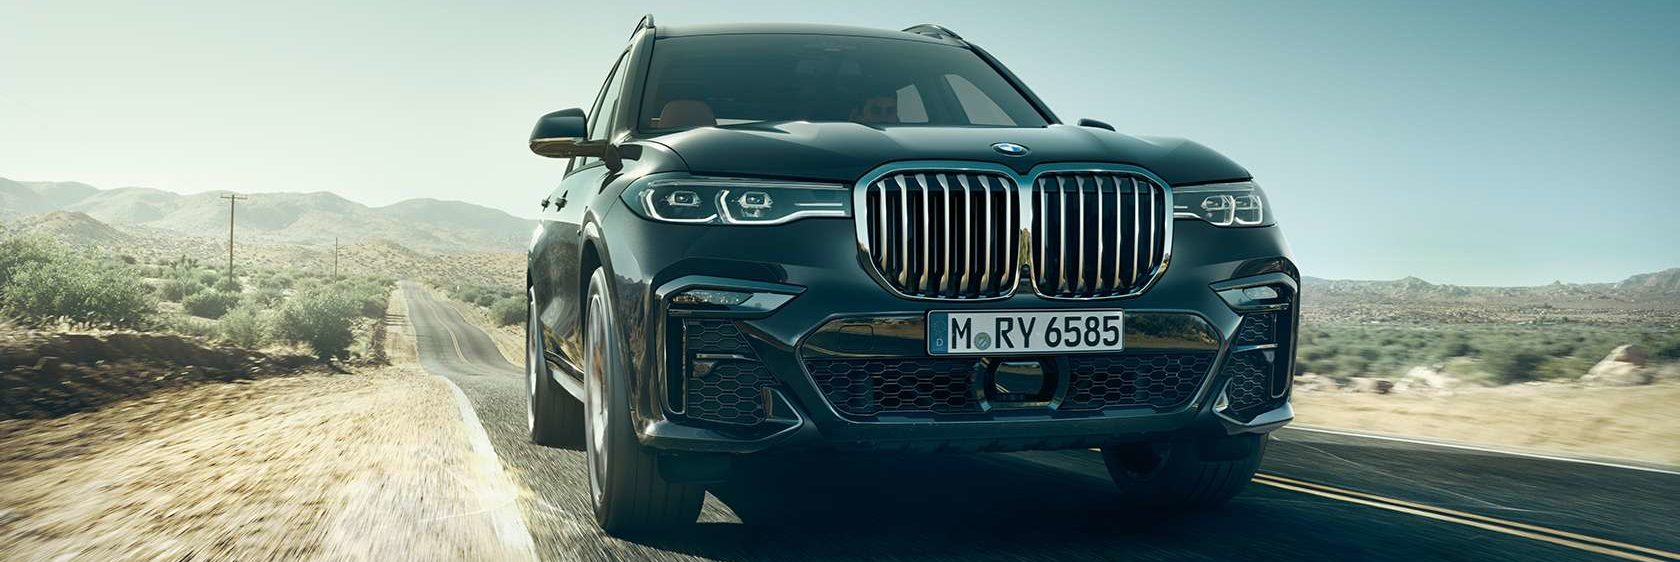 Front end view of a BMW X7